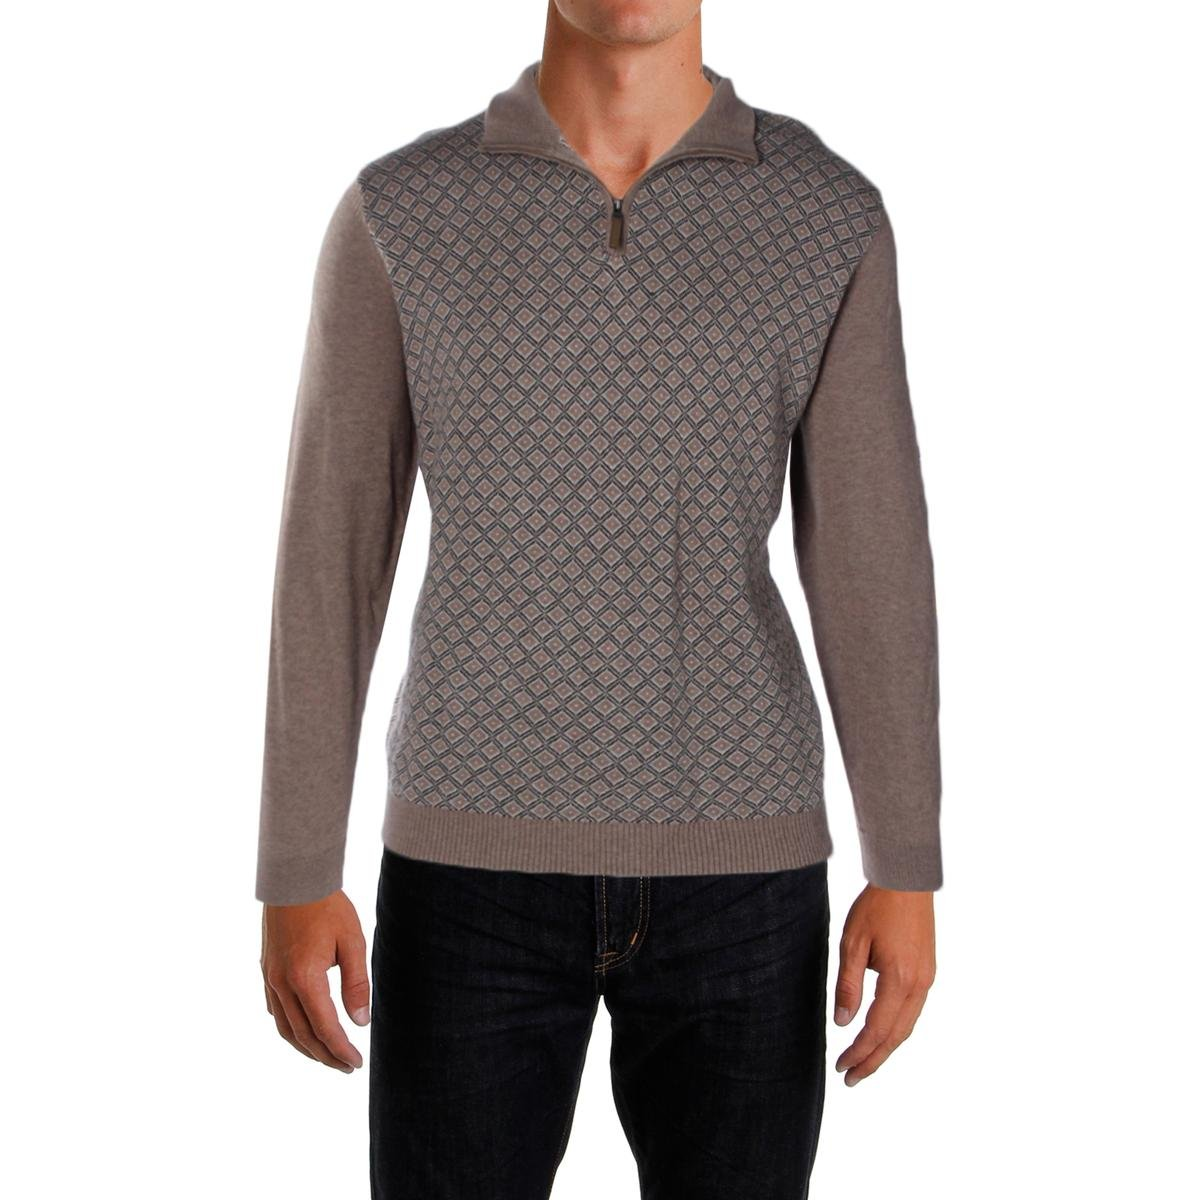 Tasso Elba Men's 1/4 Zip Diamond-Patterned Pullover Knit Sweater BHFO 63W00MDIAM